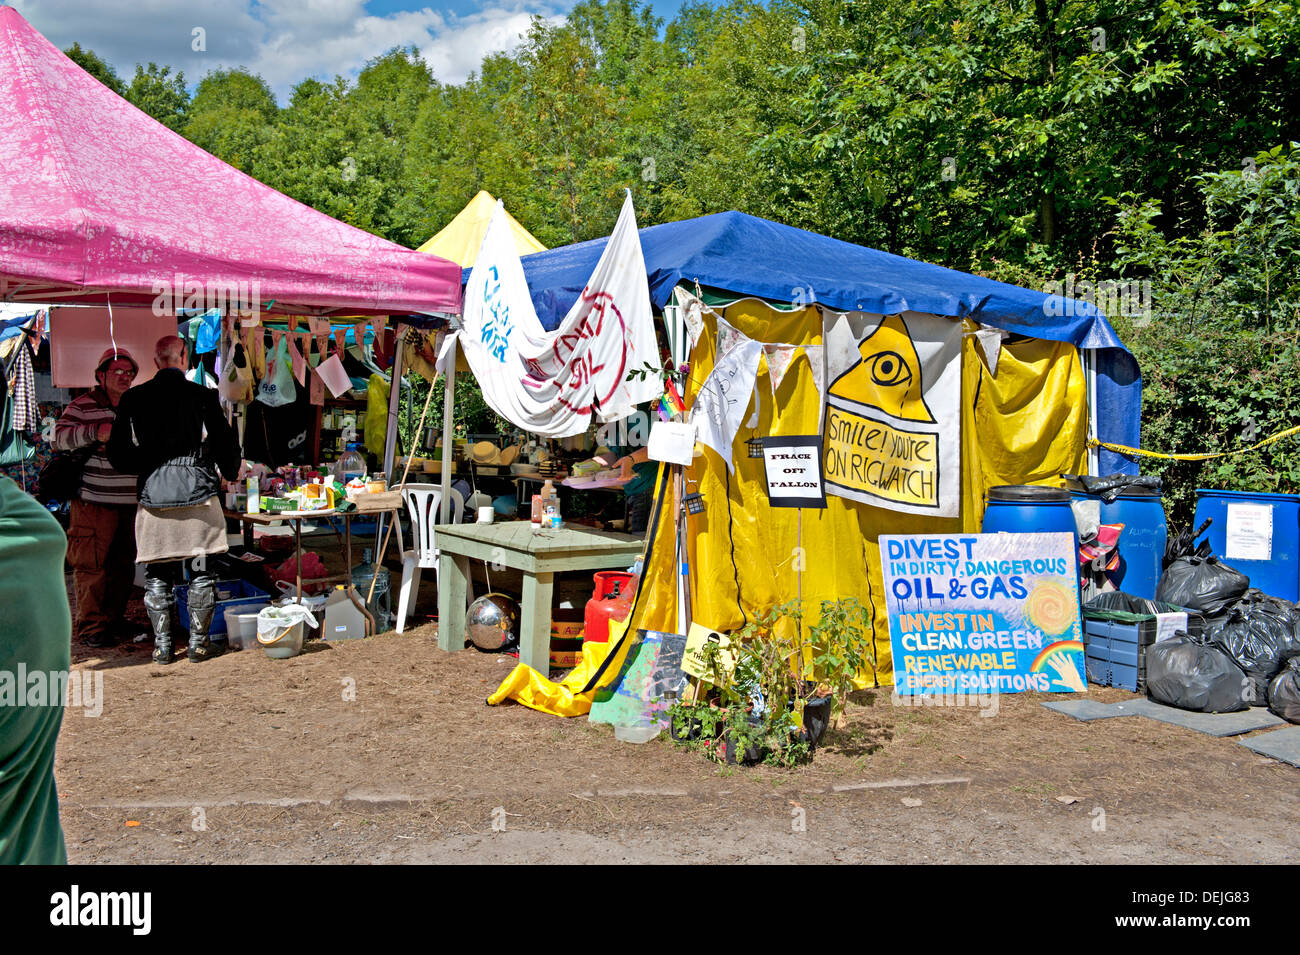 Protesters at a tented  village near Balcombe, UK They are objecting to Cuadrilla carrying out possible fracking in the area - Stock Image